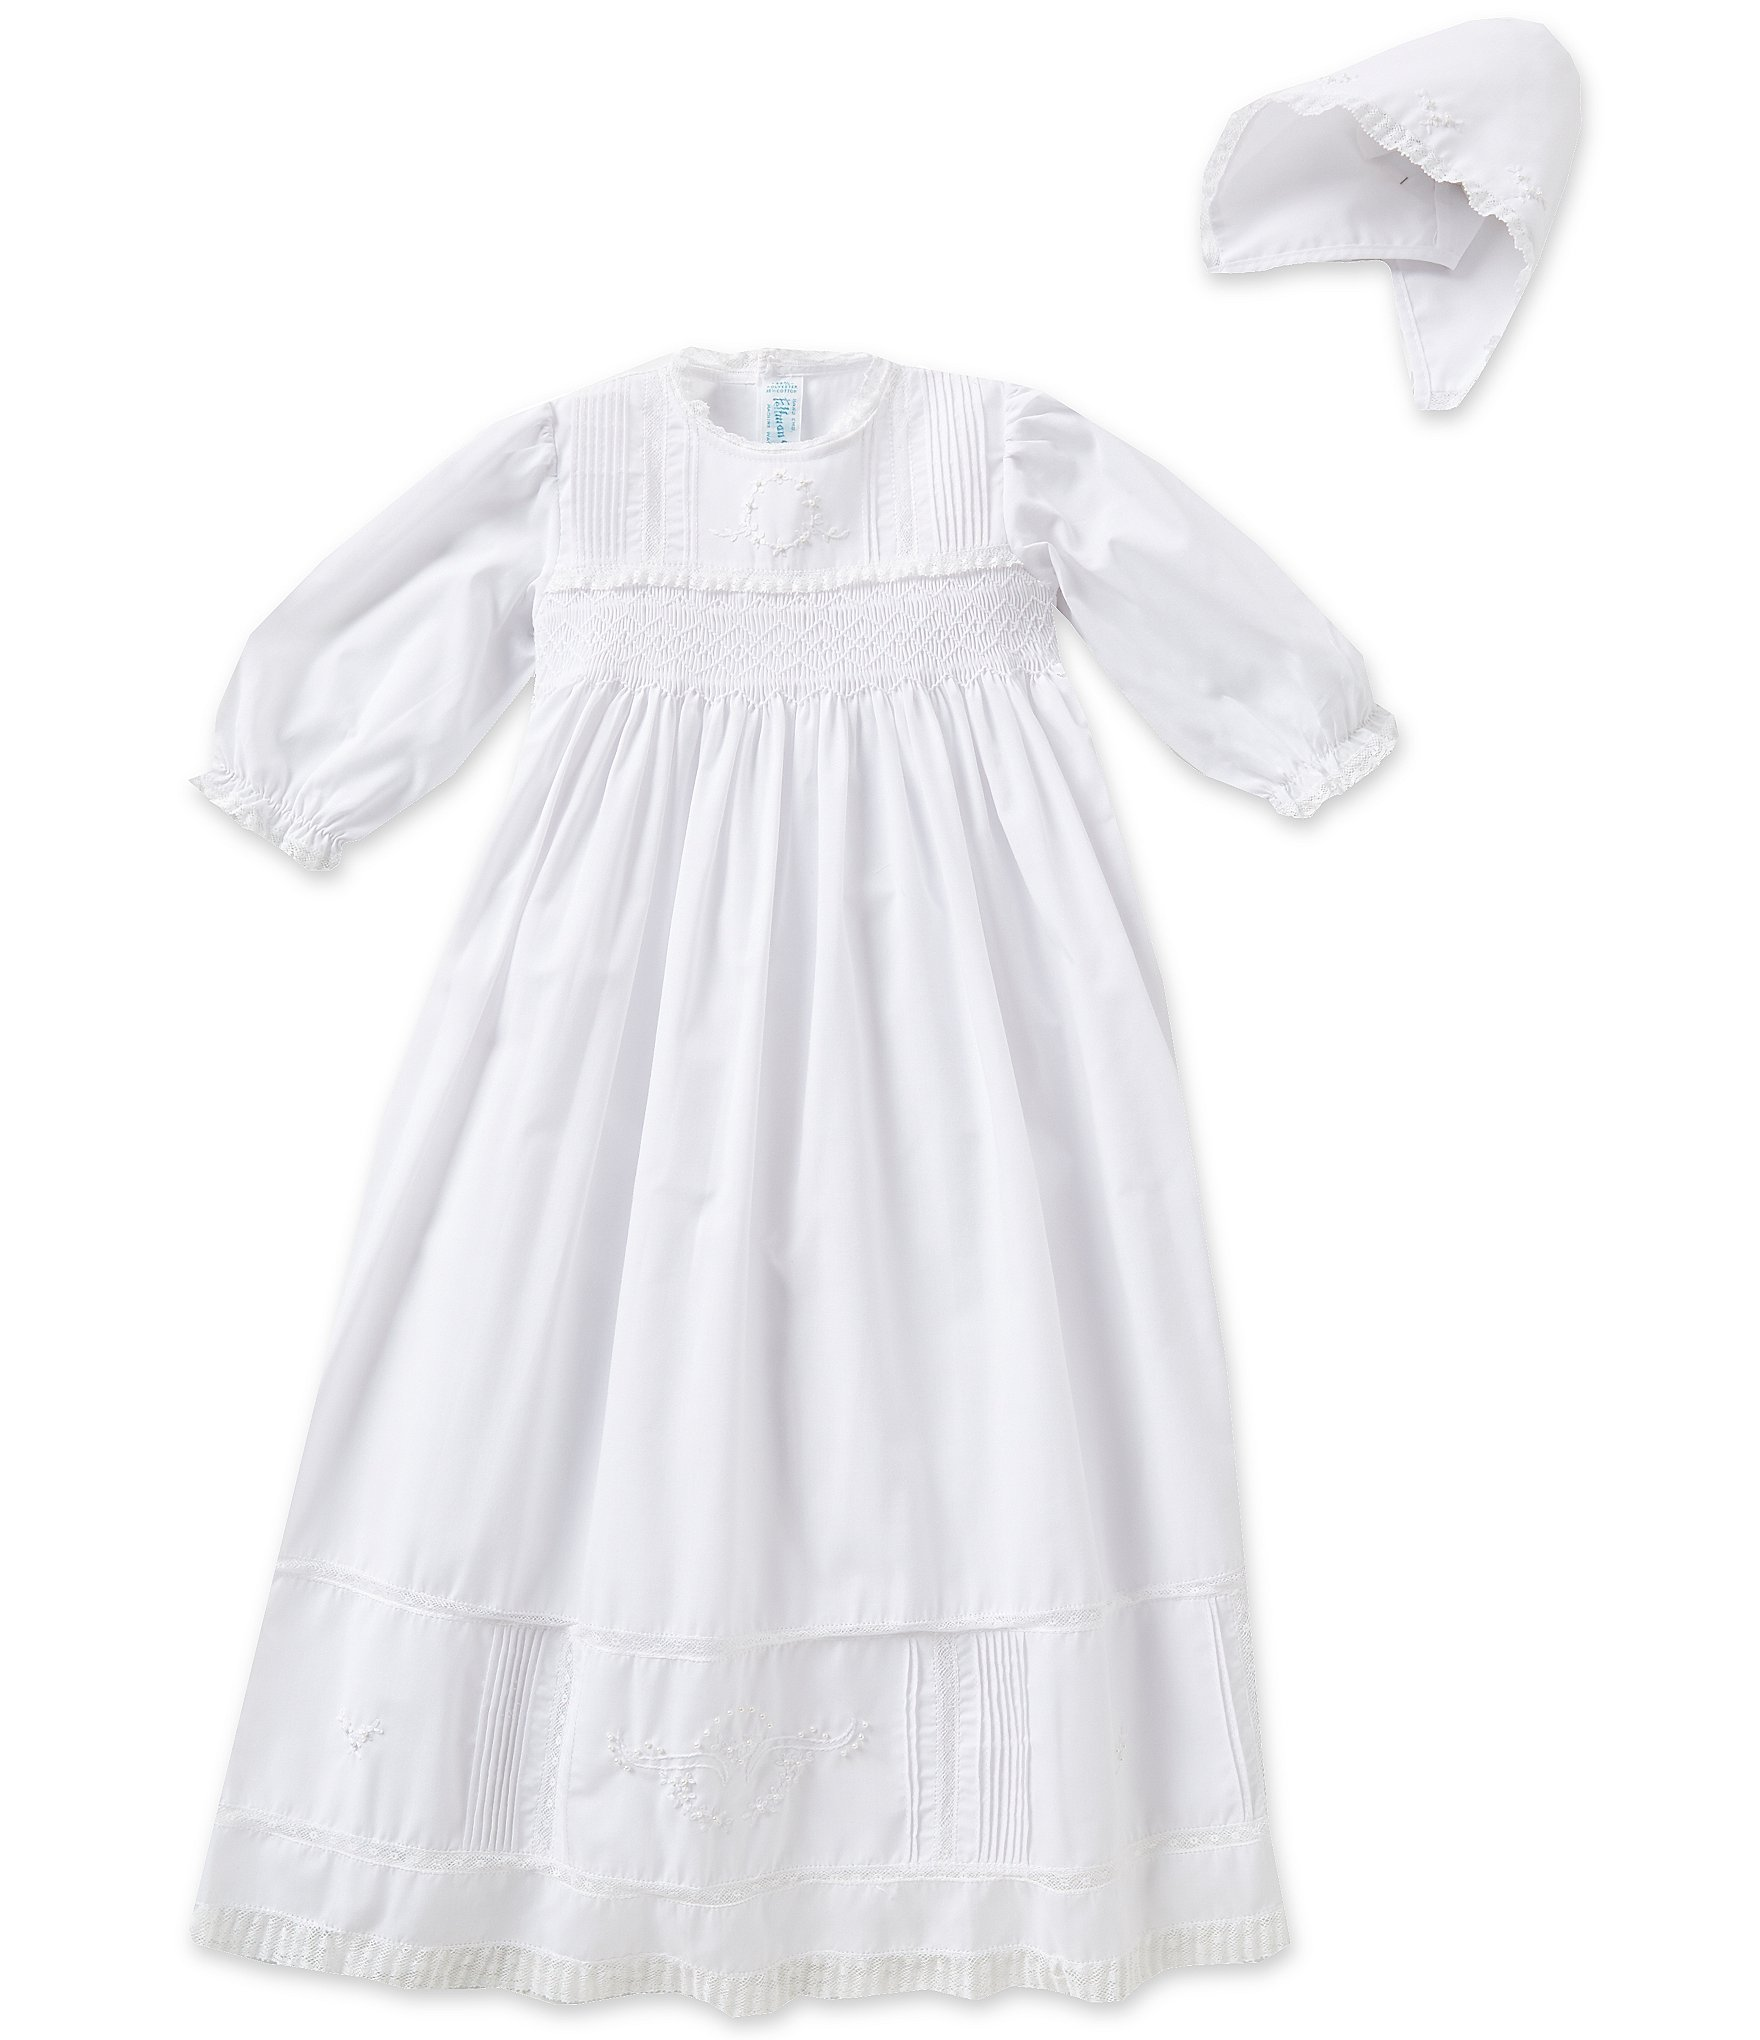 White Baby Girl Christening Dresses Gowns & Accessories